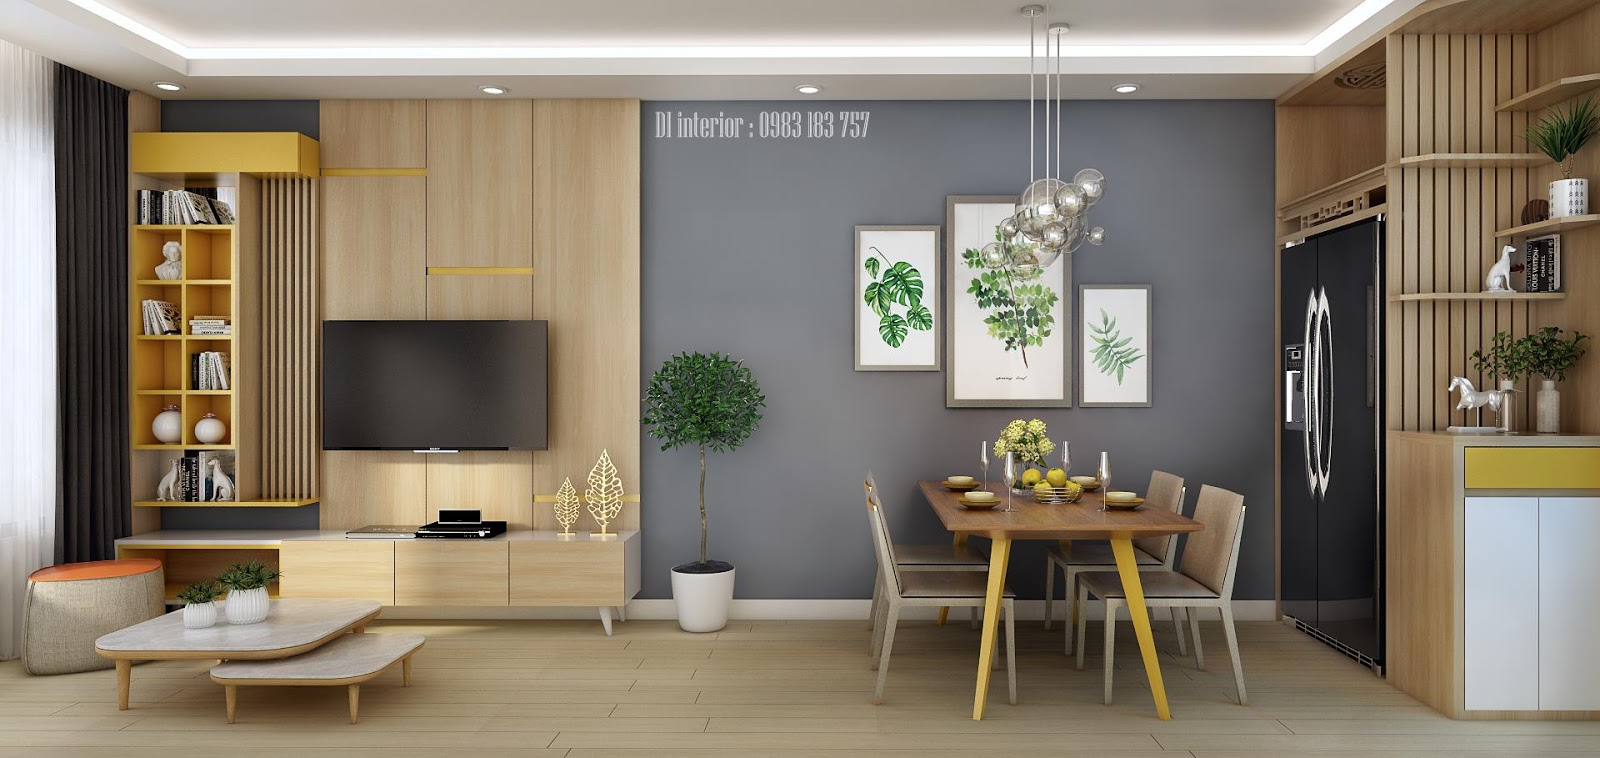 Sketchup Modern House Interior D Model Free Download